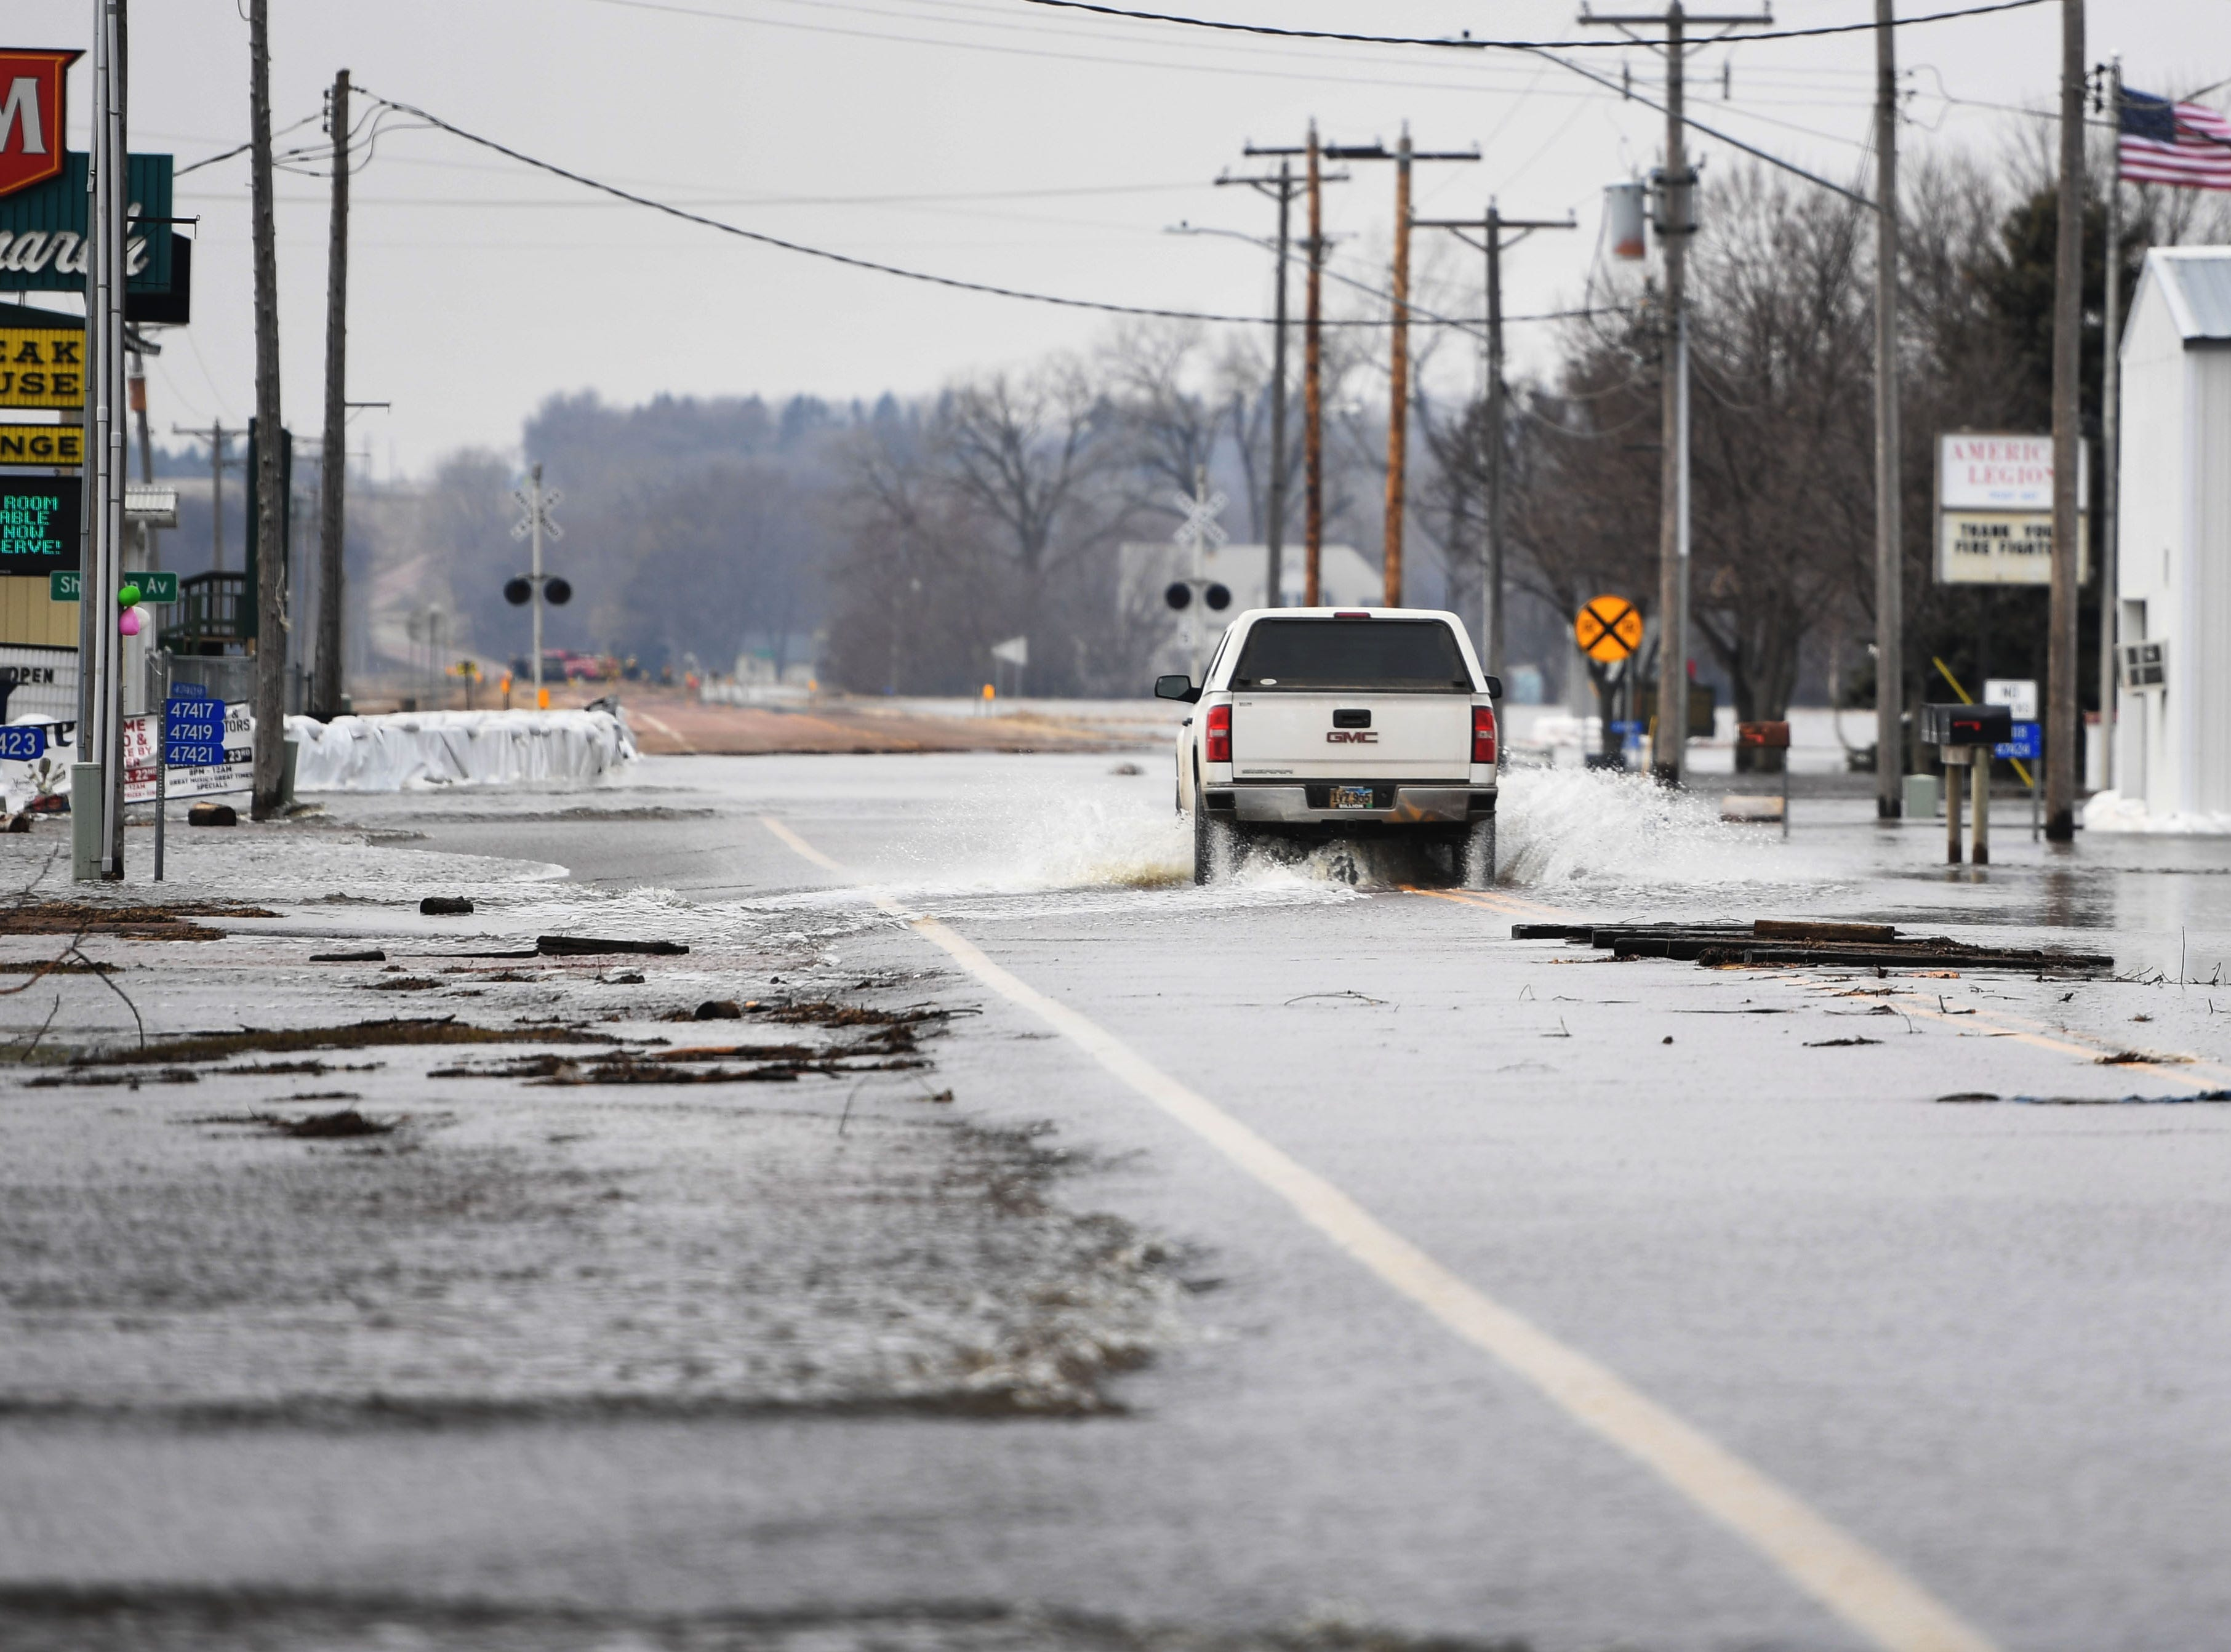 A car drives through 258th street in Renner Tuesday, March 26, in Renner, S.D. The latest river forecasts have the Big Sioux at Dell Rapids staying at 'major' flood level until early next week.